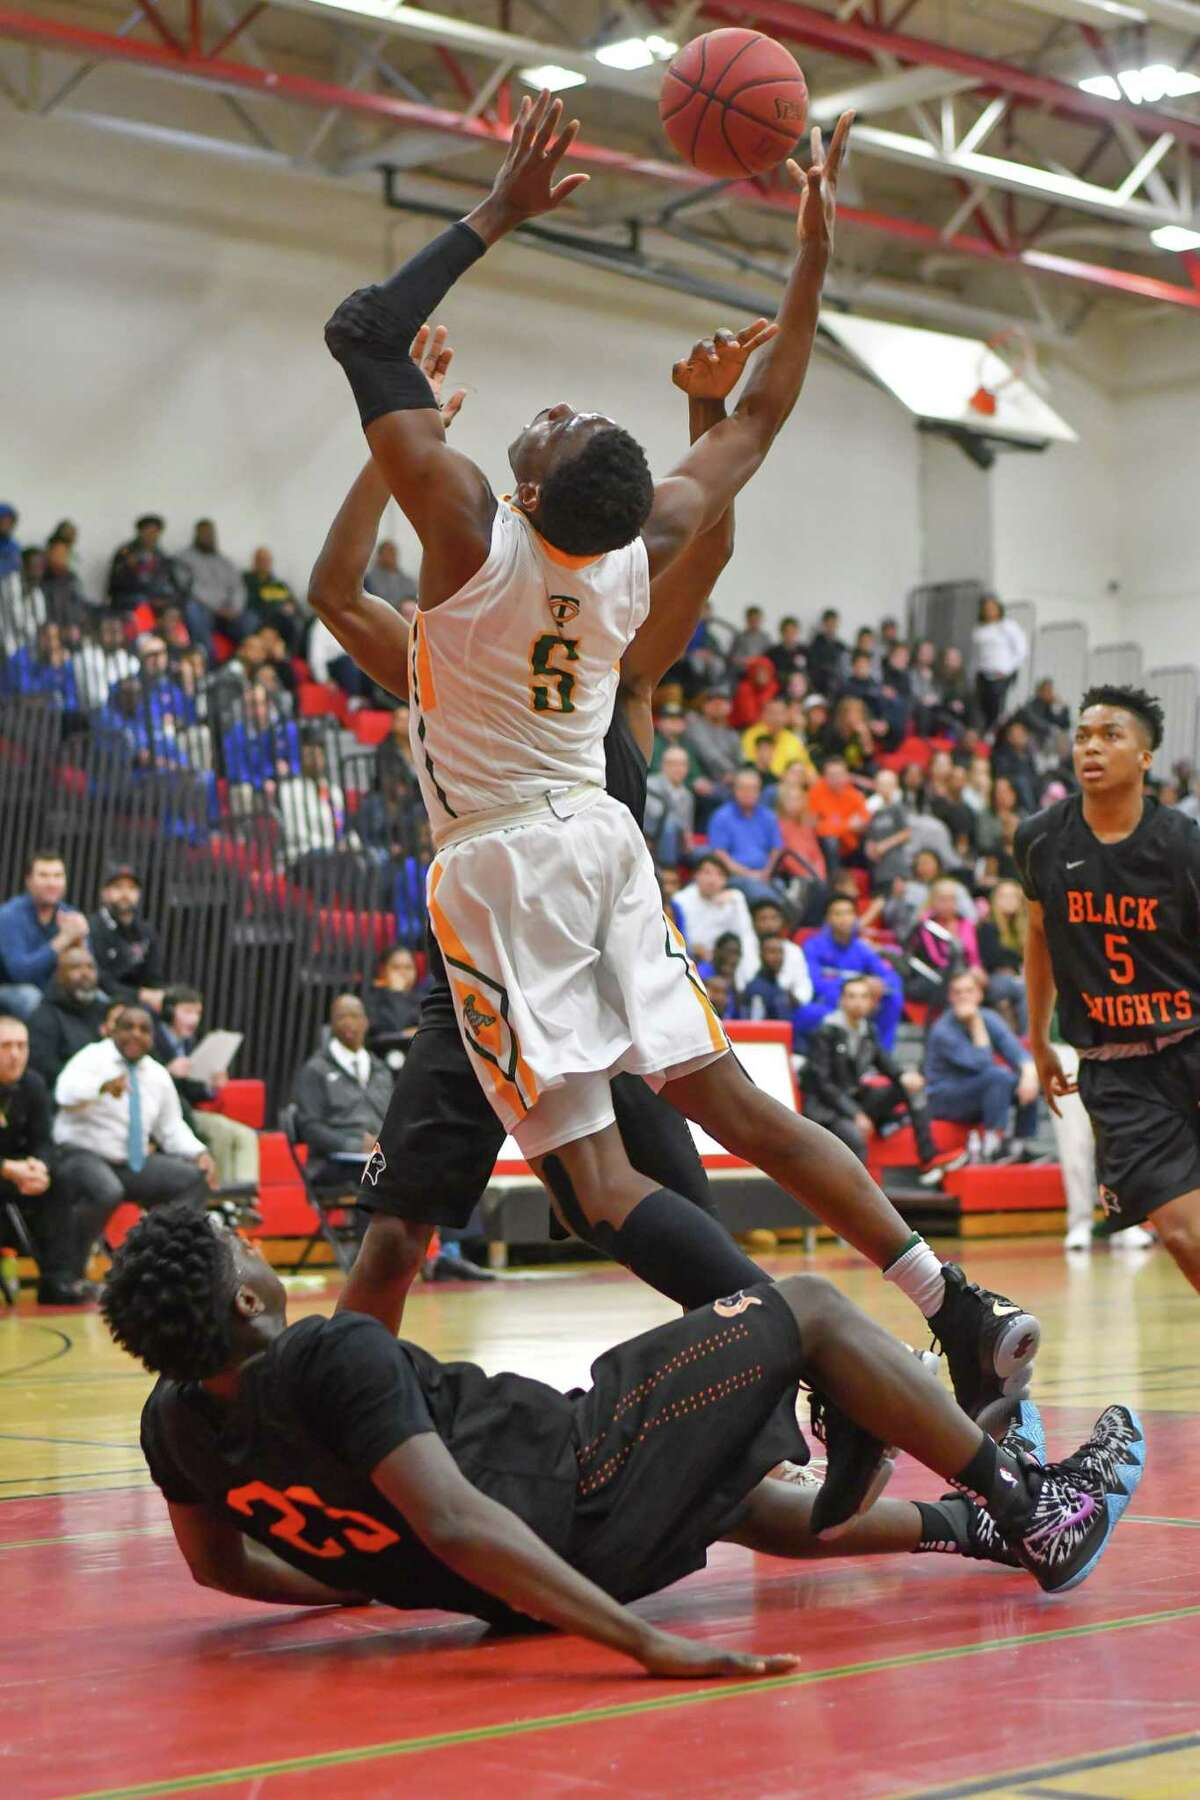 Contavio Dutreil (5) of the Trinity Catholic Crusaders goes up for a shot during a FCIAC quarter final game against the Stamford Black Knights at Fairfield Warde High School on Saturday February 24, 2018, in Fairfield, Connecticut.